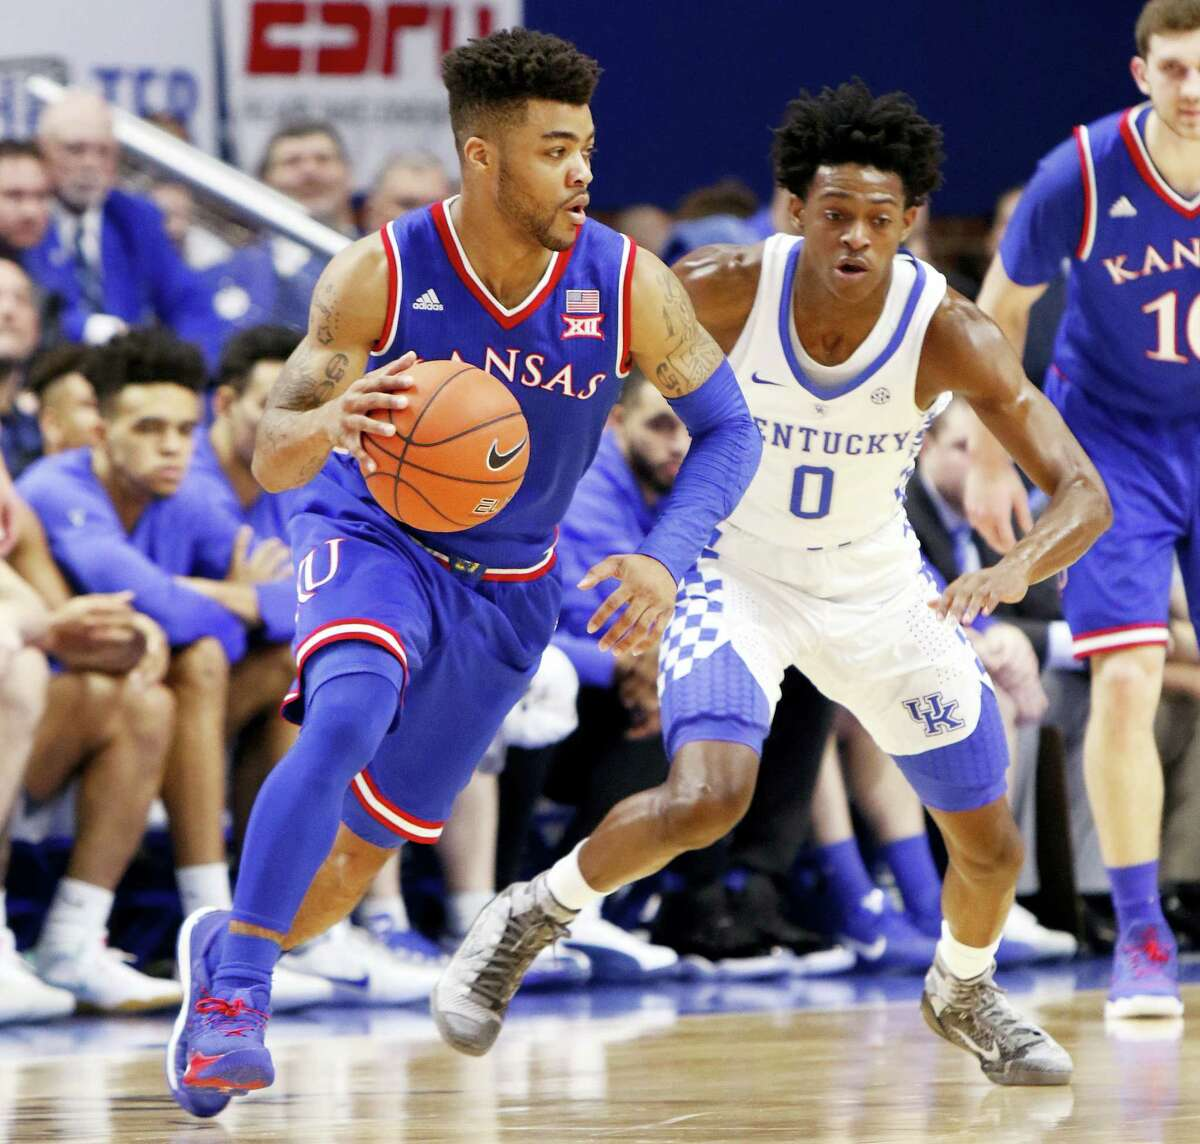 Kansas' Frank Mason III, left, looks for an opening against Kentucky's De'Aaron Fox during their game on Saturday.